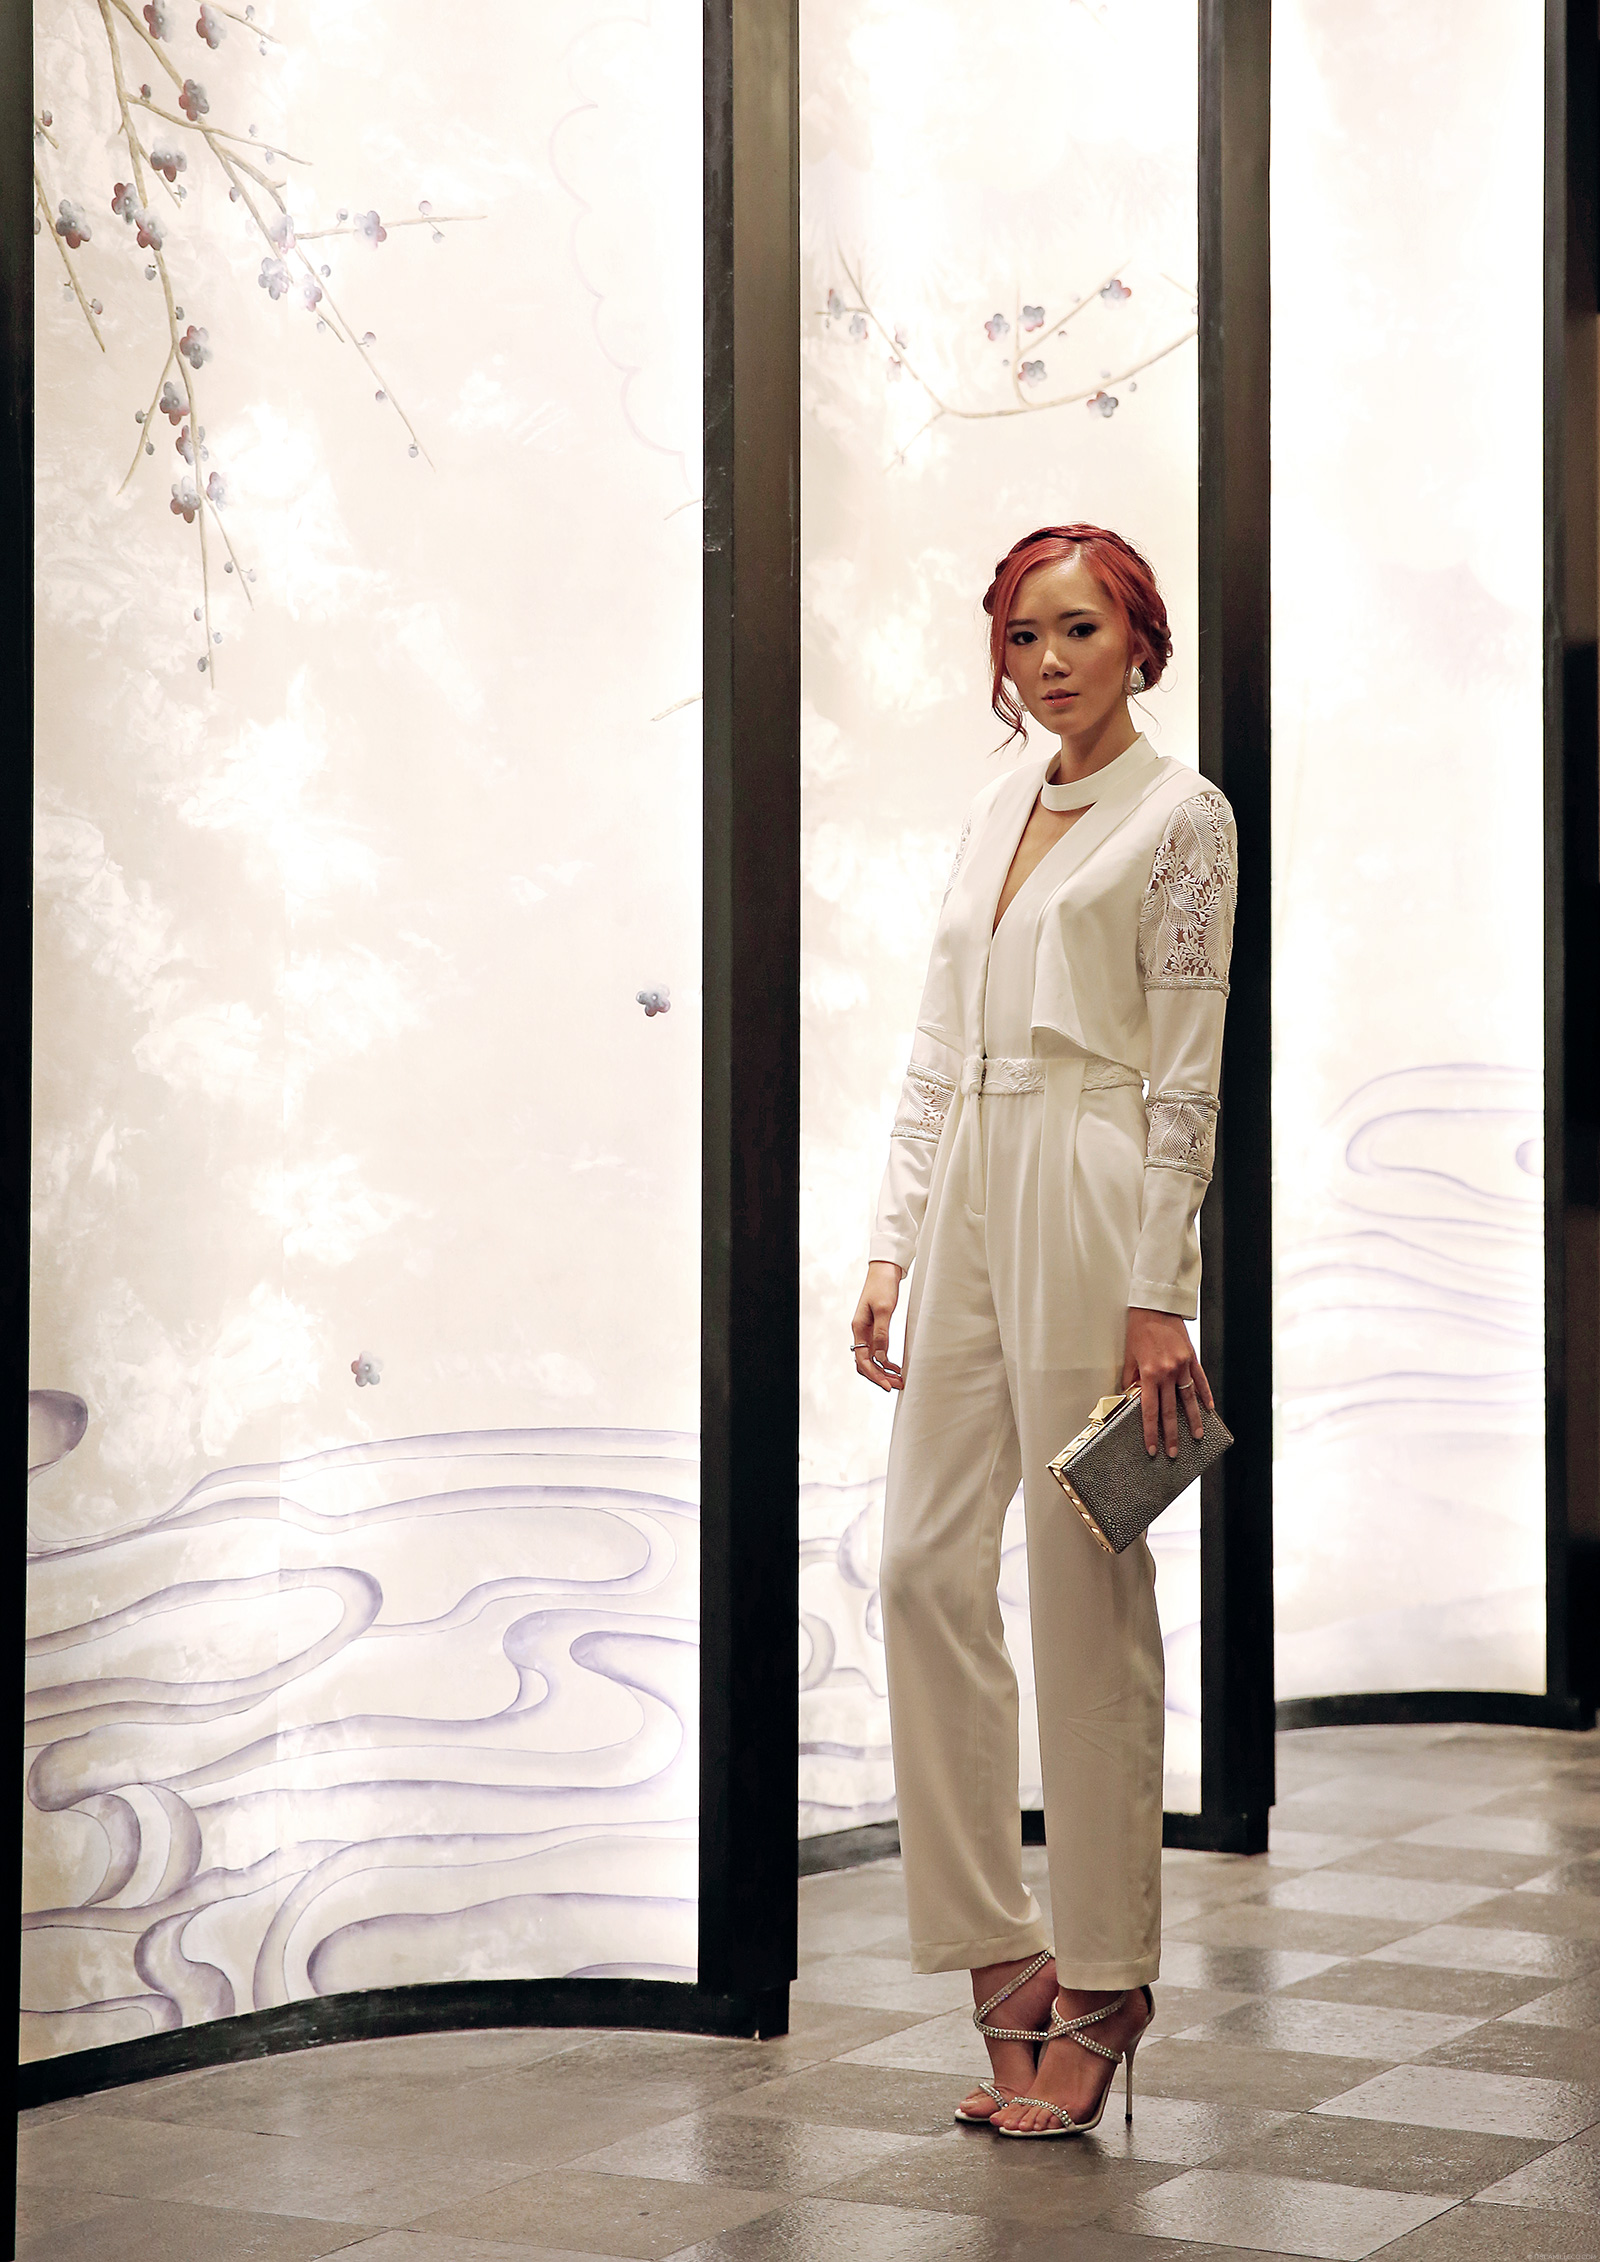 Thea By Thara jumpsuit - www.itscamilleco.com